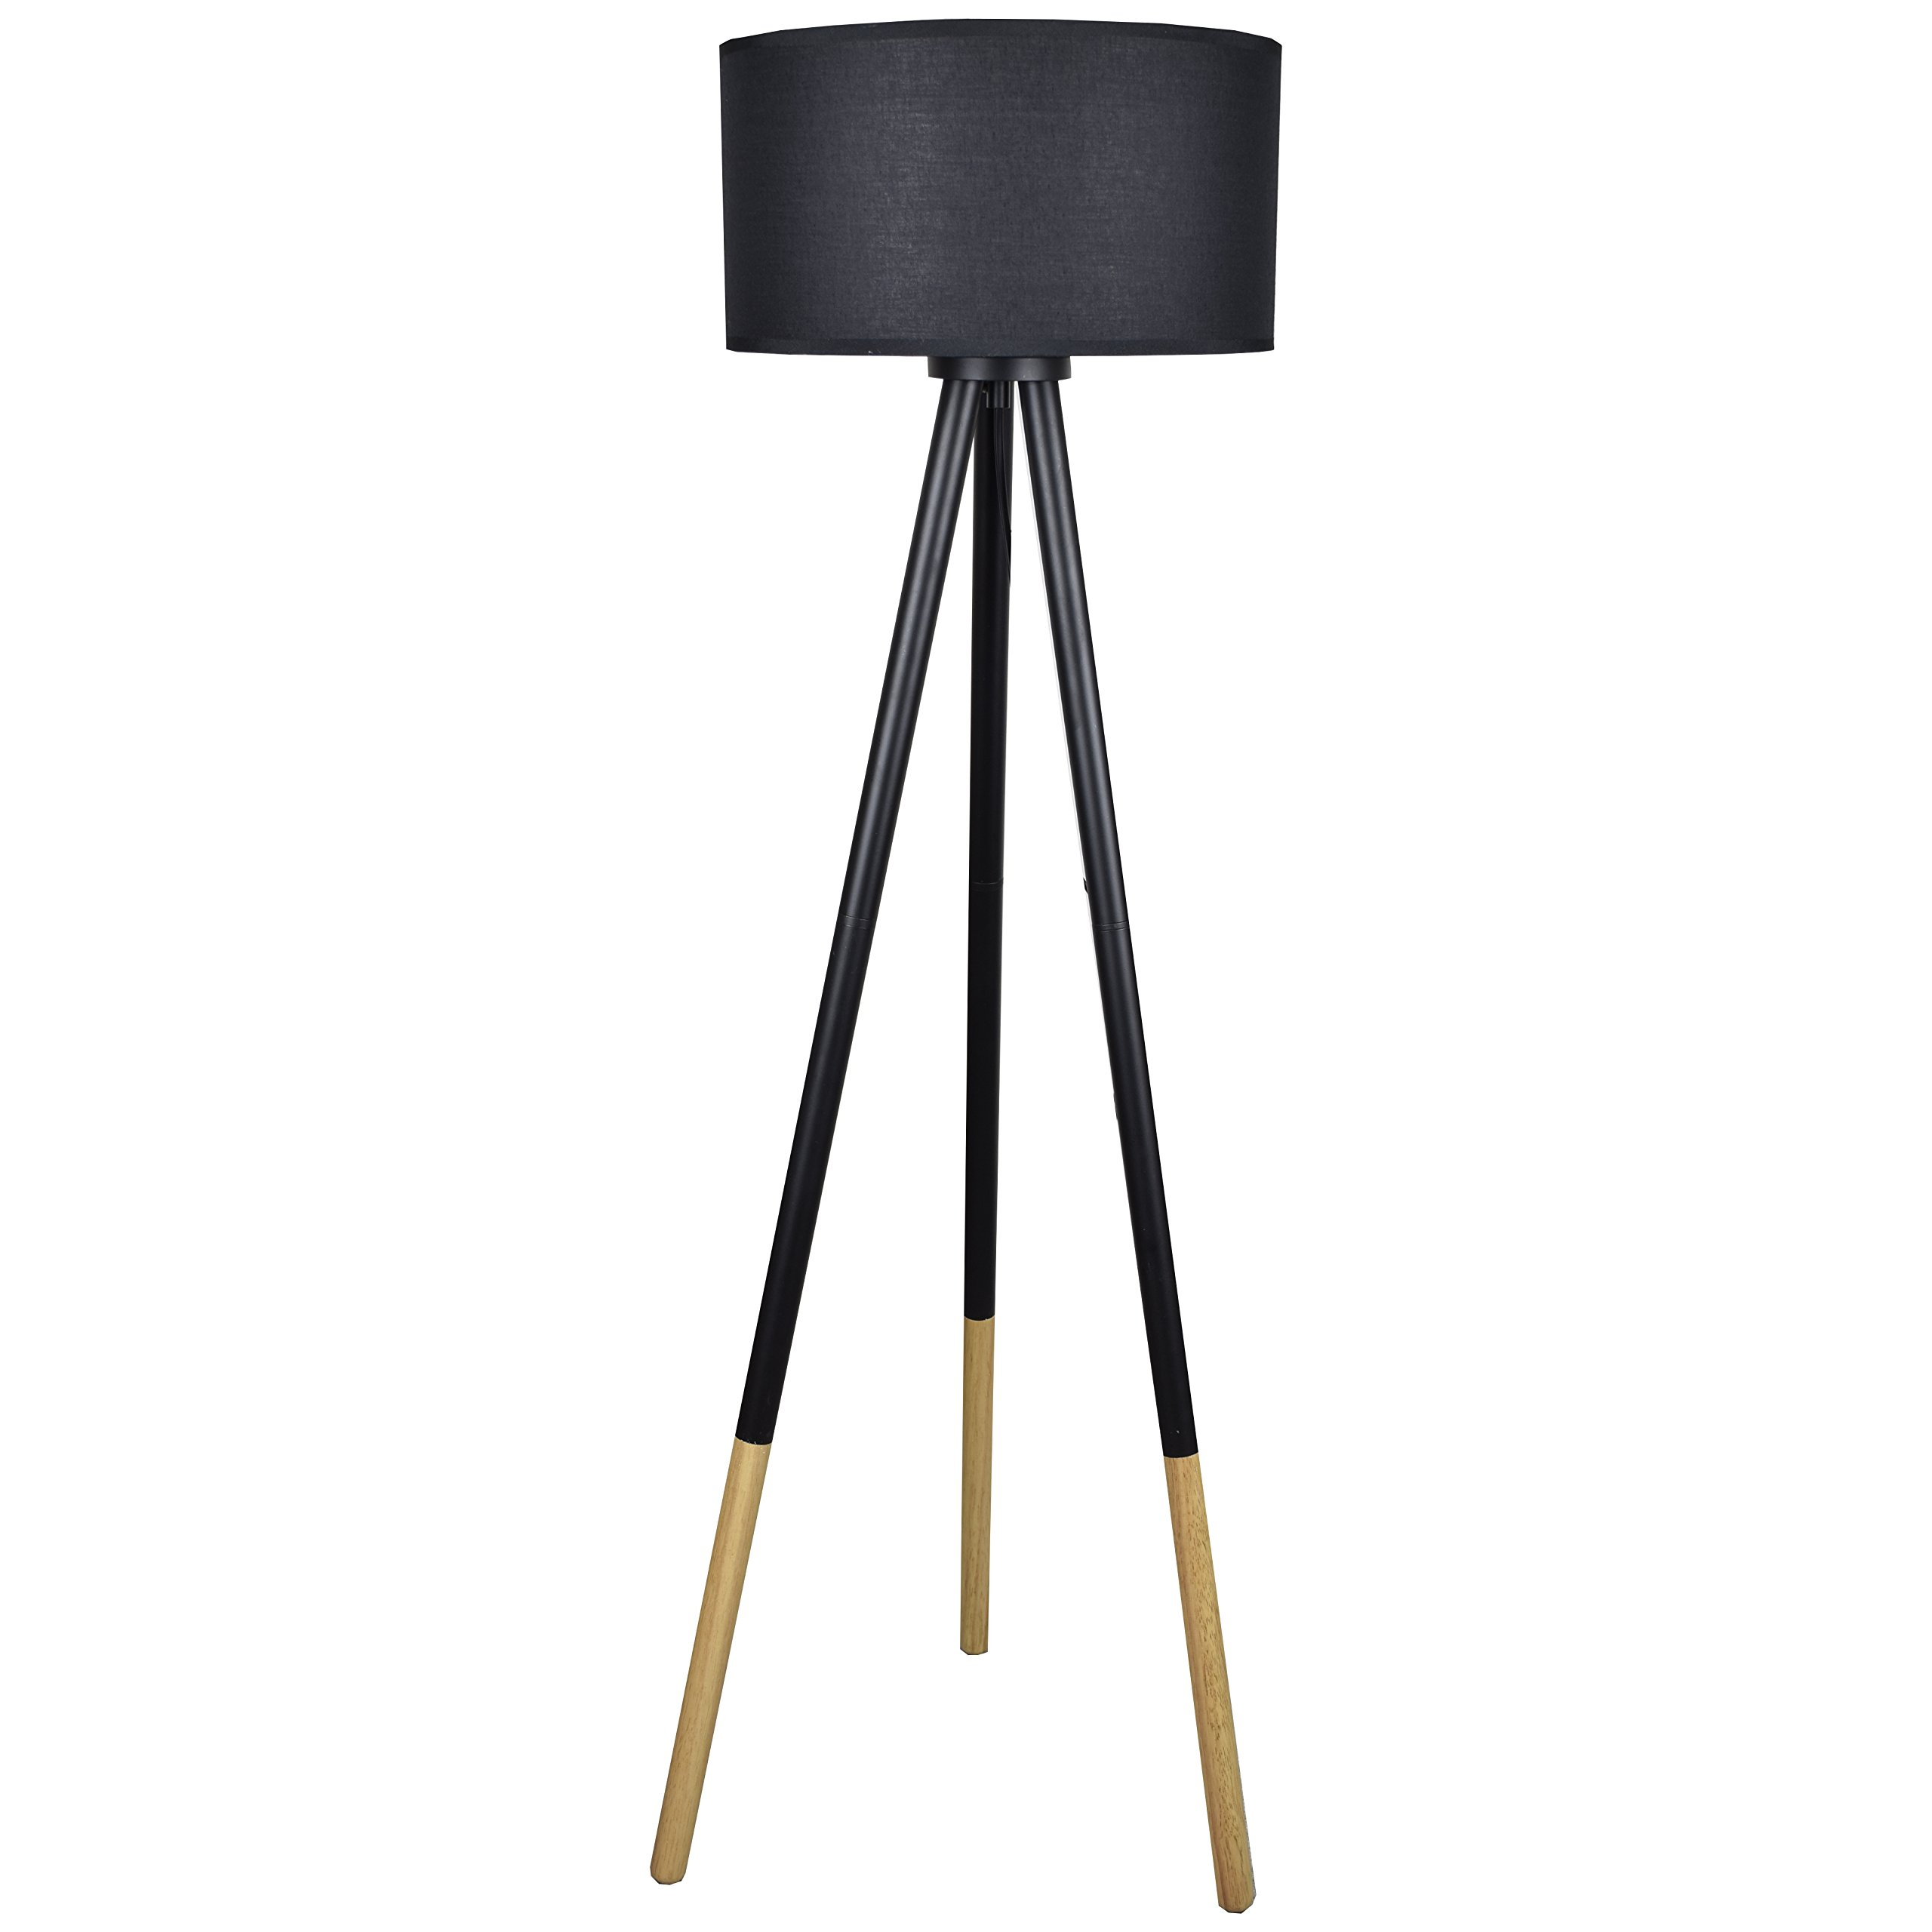 Light Accents Tripod Floor Lamp Stockholm Wood and Metal Pole Lamp with Textured Linen Shade – Torchiere Lamp – Standing Light (Black)